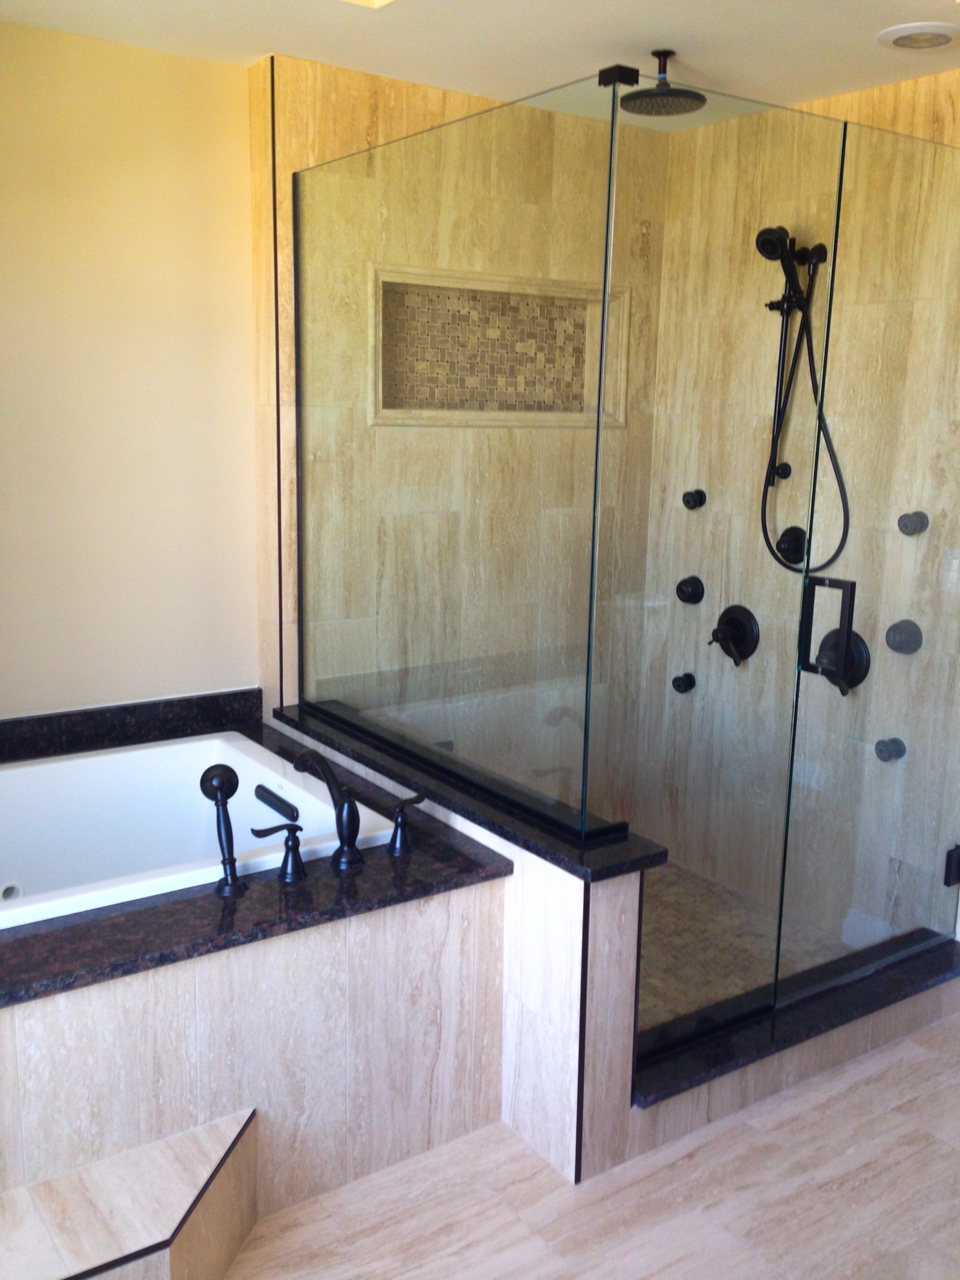 Building relationships one custom home at a time. General Contracting in the Fenton, South Lyon, Novi, Canton, Clarkston, Orion, and other Southwest Michigan areas Custom Shower